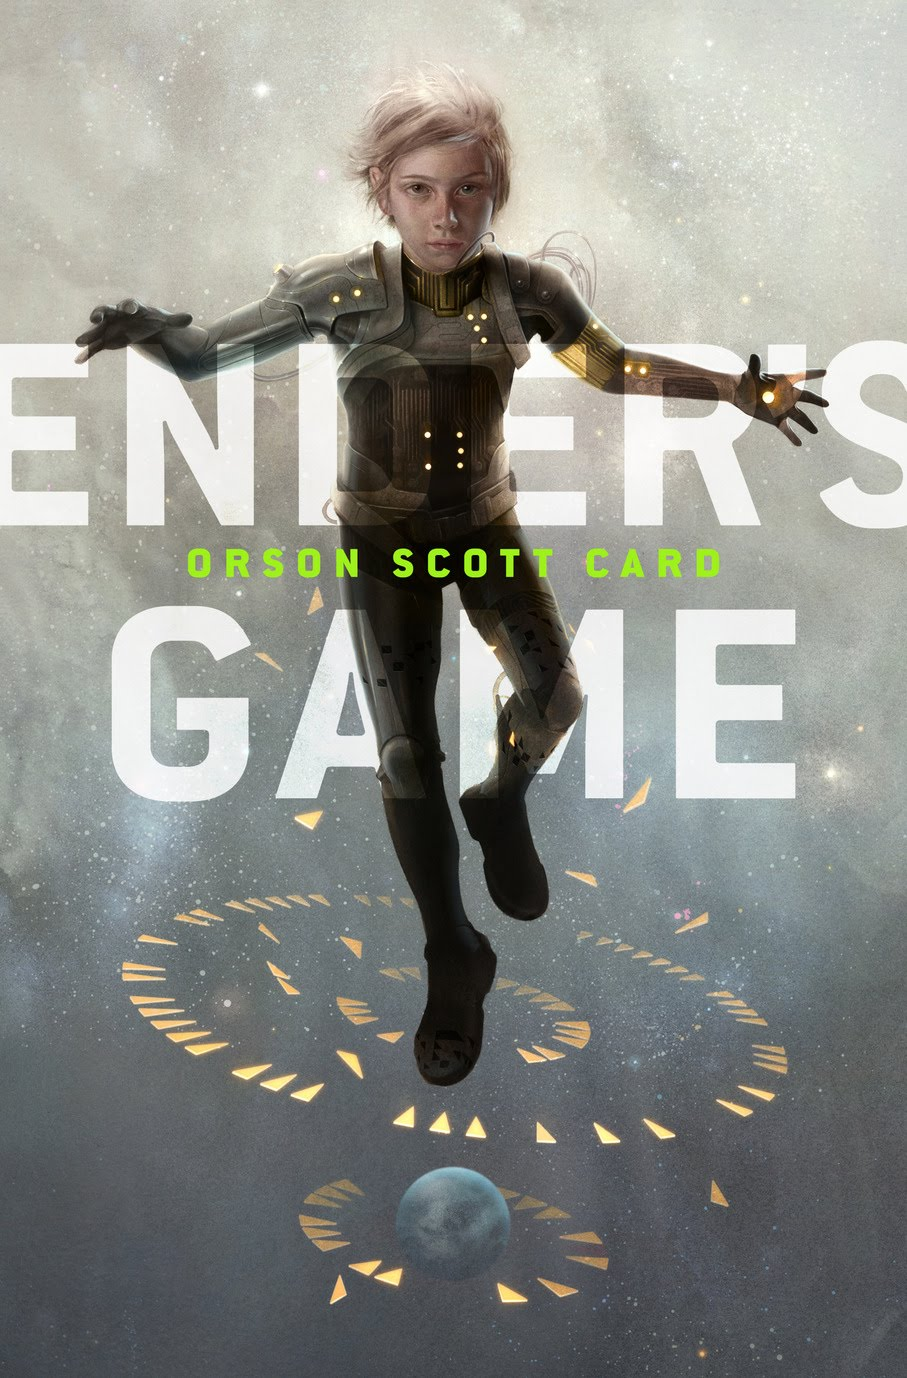 Ender's Game... a much cooler cover than my copy dammit!